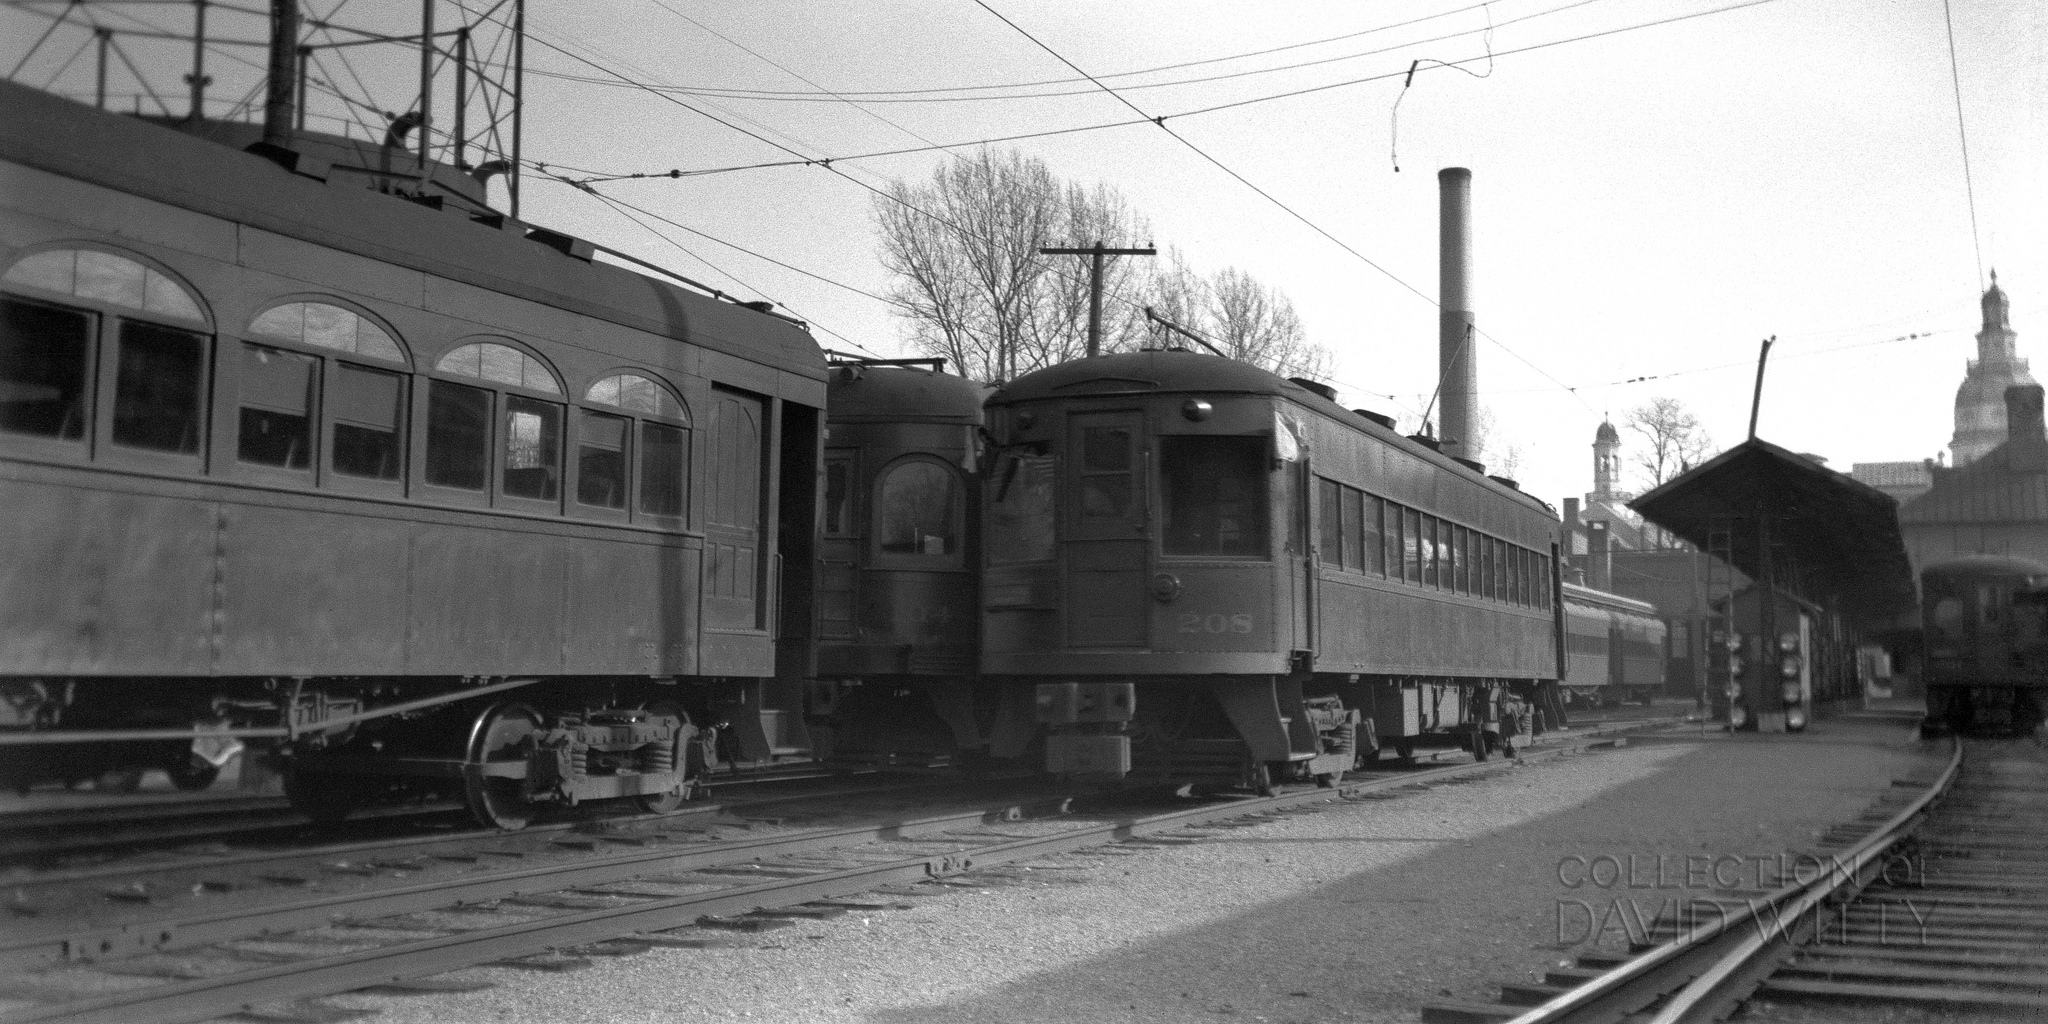 Baltimore & Annapolis Railroad Car #208 at Bladen Street Station. Annapolis, Maryland Date: December 1939. Source: David Witty Collection.